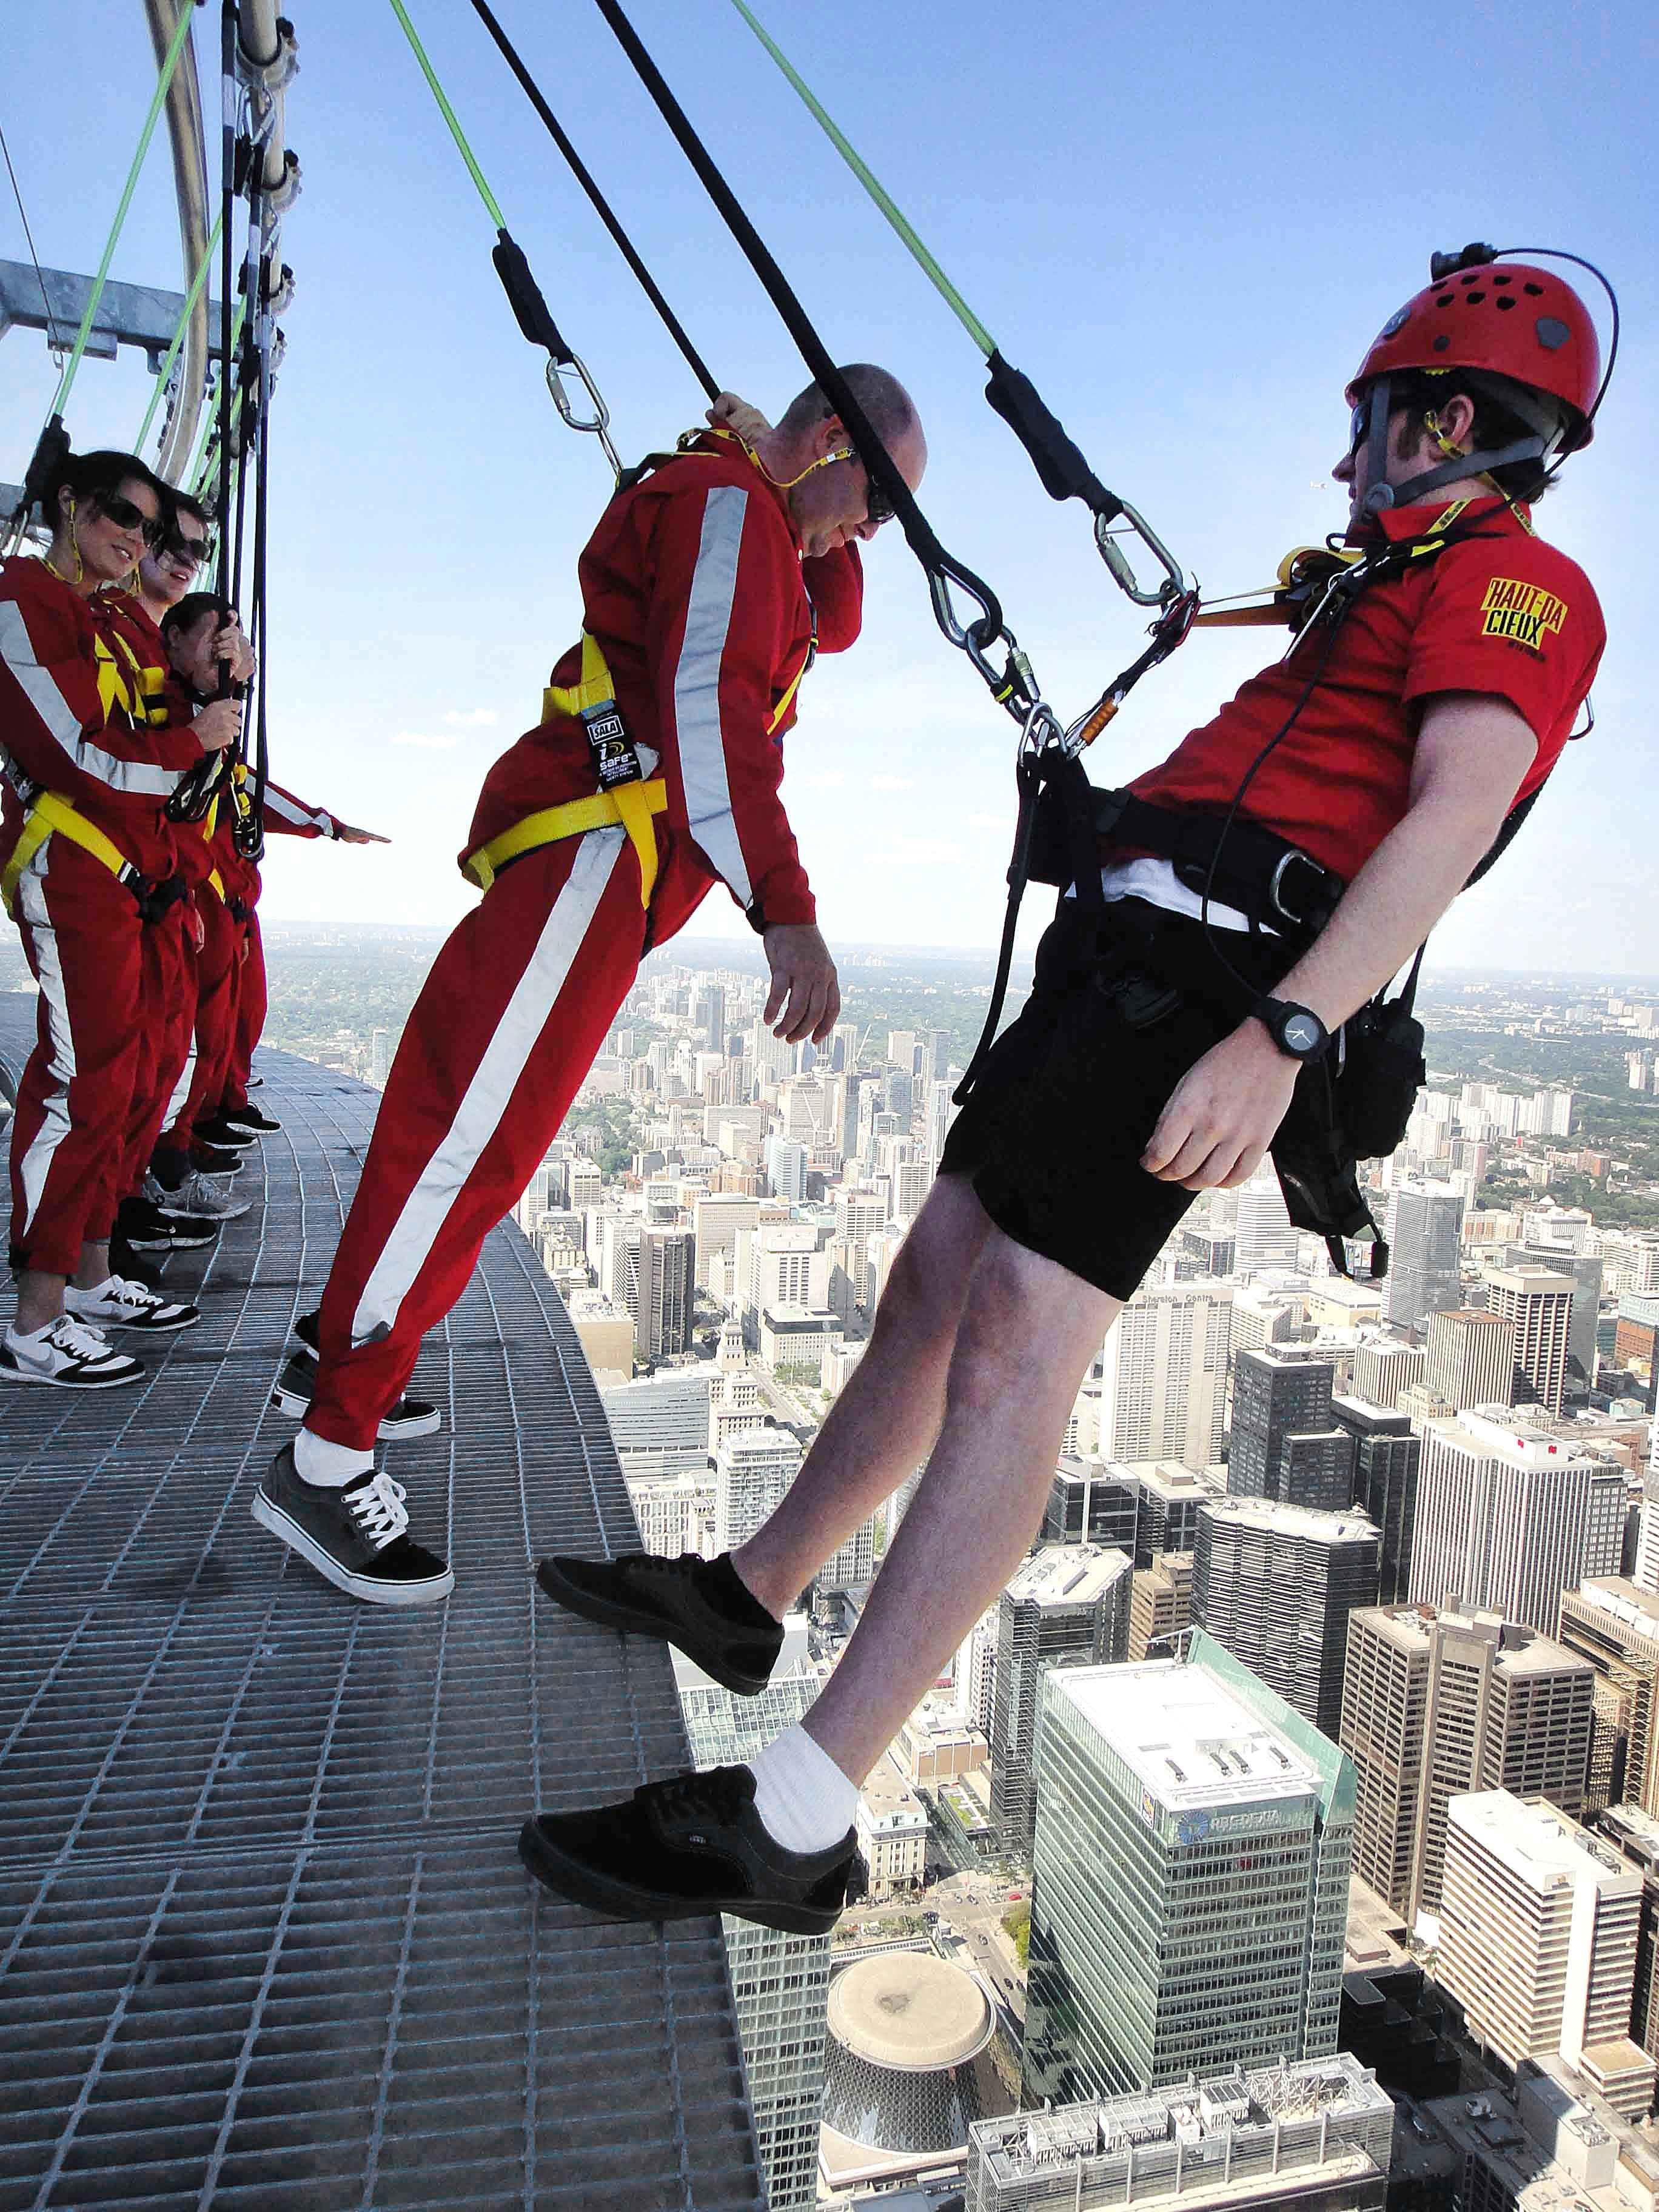 Want a job that will never get boring? We are now hiring for EdgeWalk. Check out our careers page for more http://www.cntower.ca/en-ca/contact-us/careers/opportunities.html / À la recherche d'un travail toujours intéressant? Nous recrutons pour L'HAUT-DA CIEUX http://www.cntower.ca/fr-ca/contactez-nous/emploi/perspectives.html